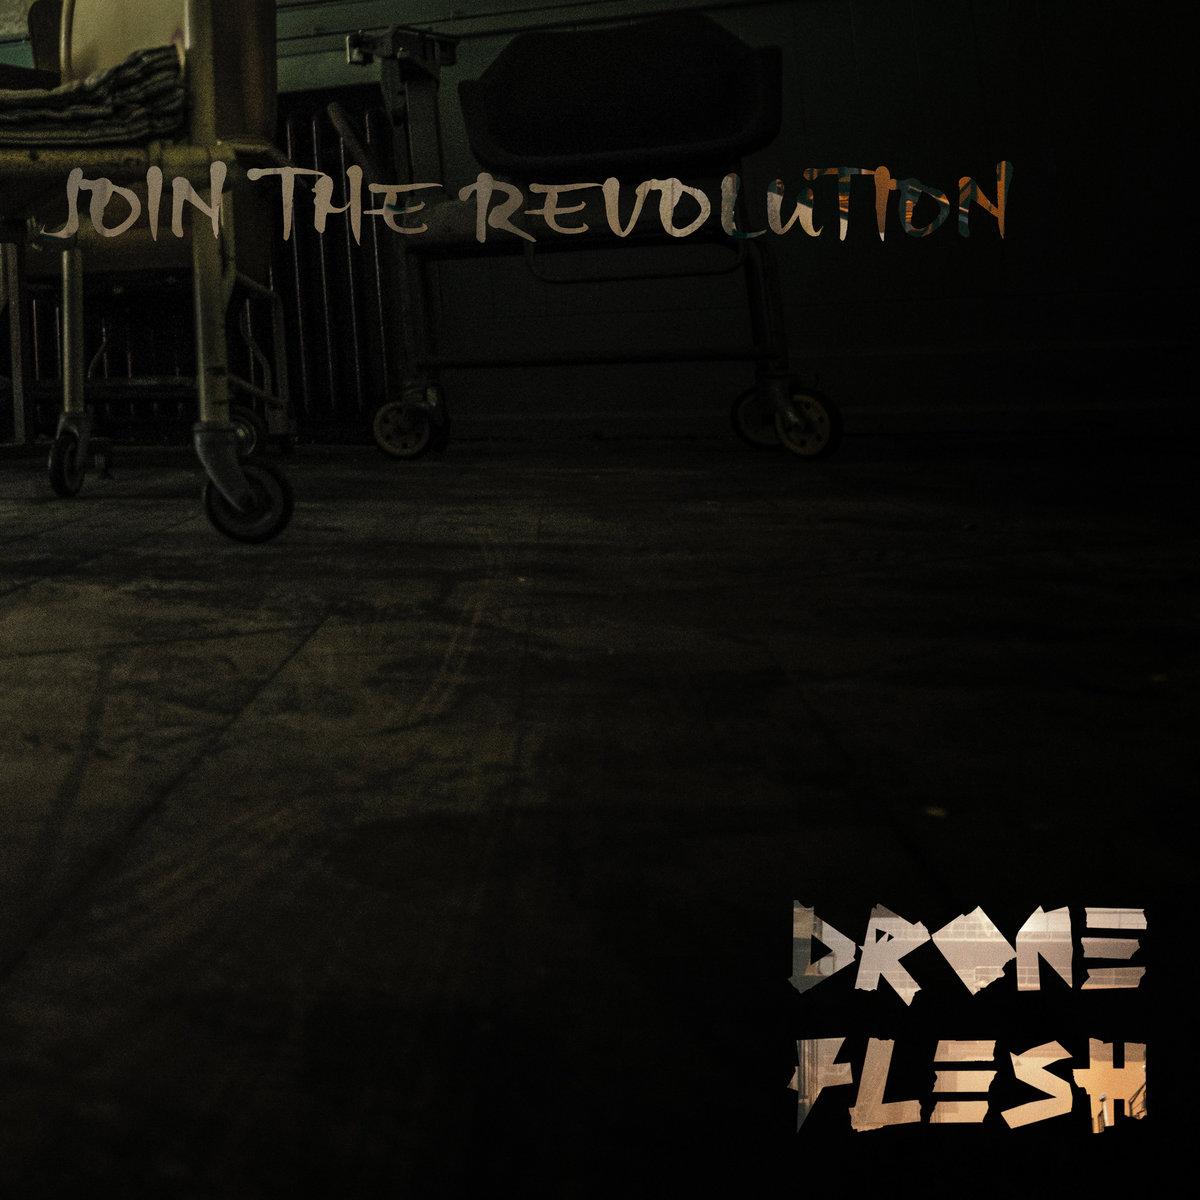 Join The Revolution by Drone Flesh